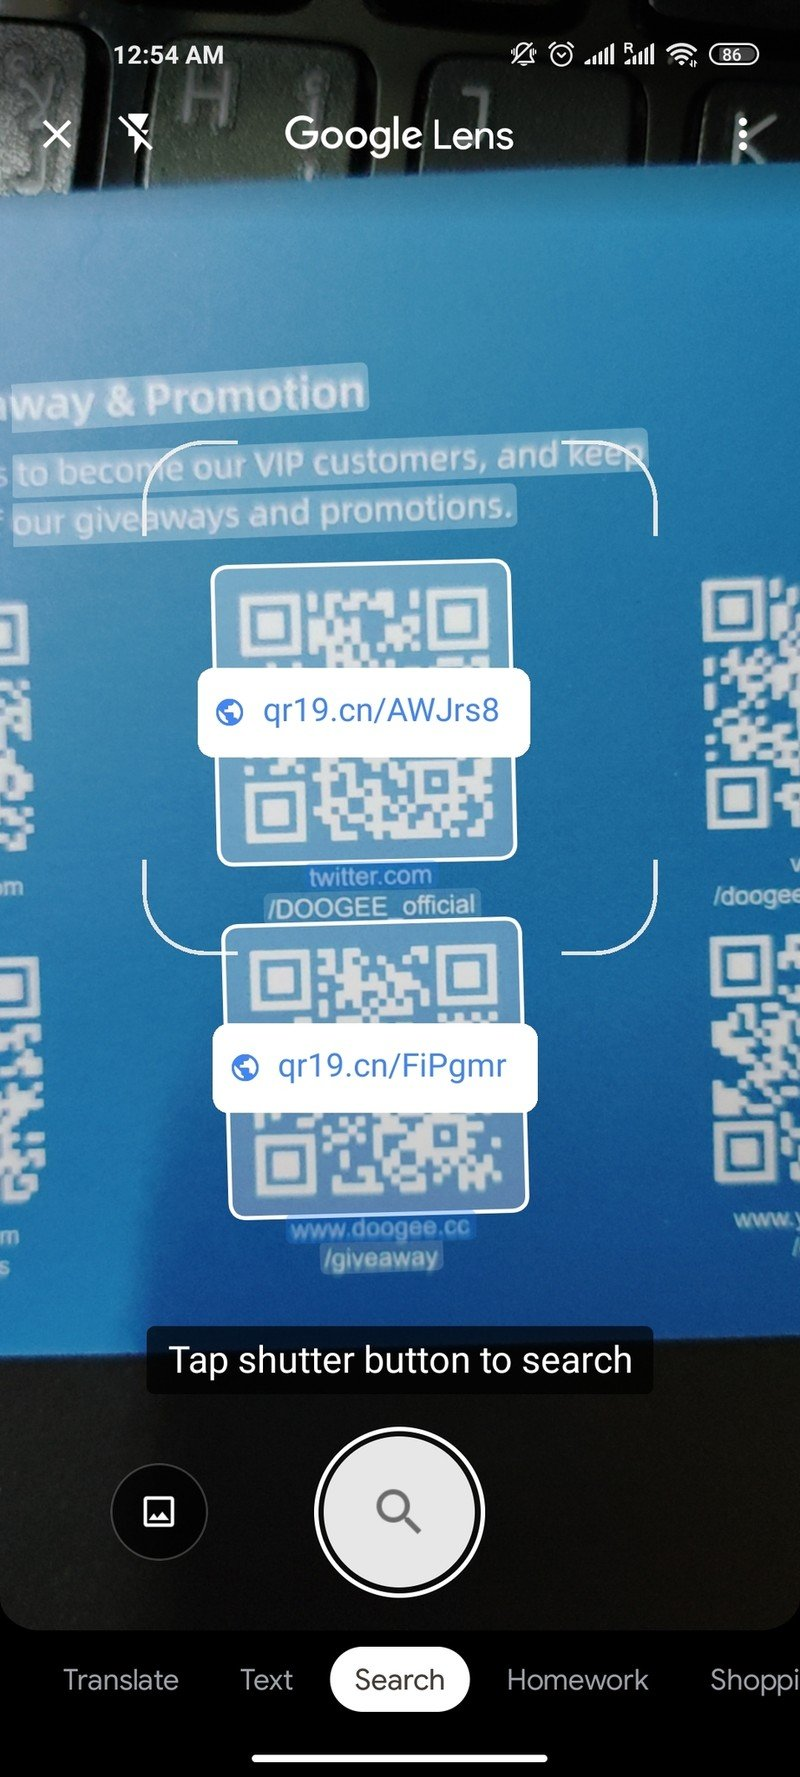 android-scan-qr-code-5.jpg